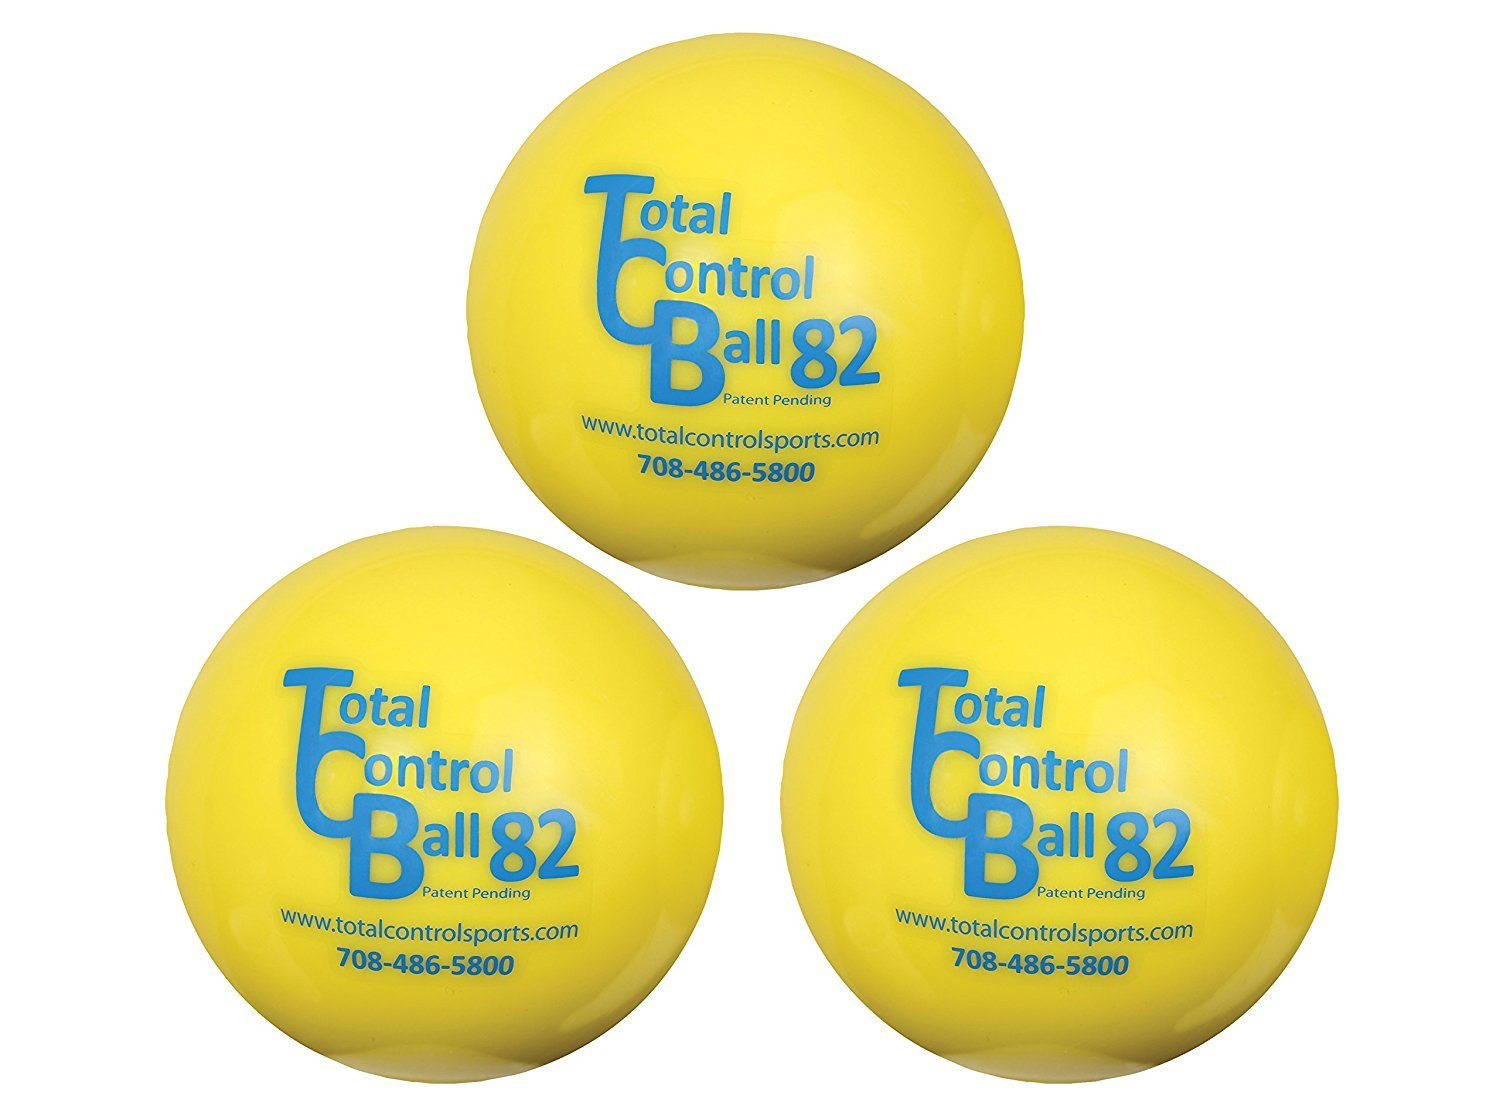 Total Control 3.2'' Training Ball 82 (3 Pack) by Total Control Sports (Image #1)